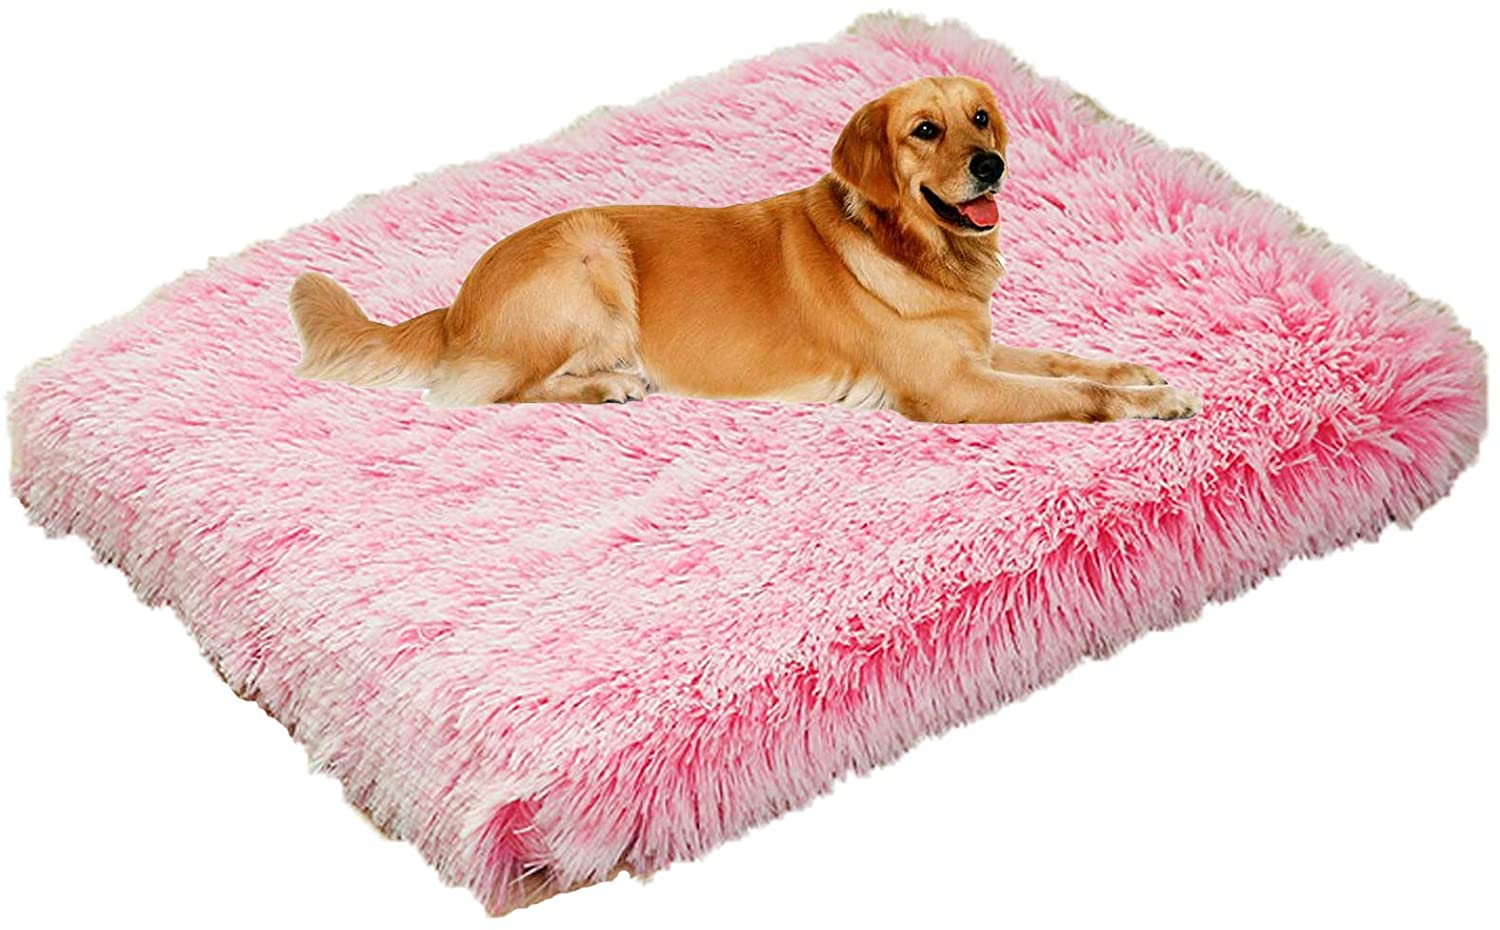 Teduola Dog Bed Mat Soft Crate Pad Washable Removable Anti-Slip for Large Medium Small Dogs and Cats Kennel Pad